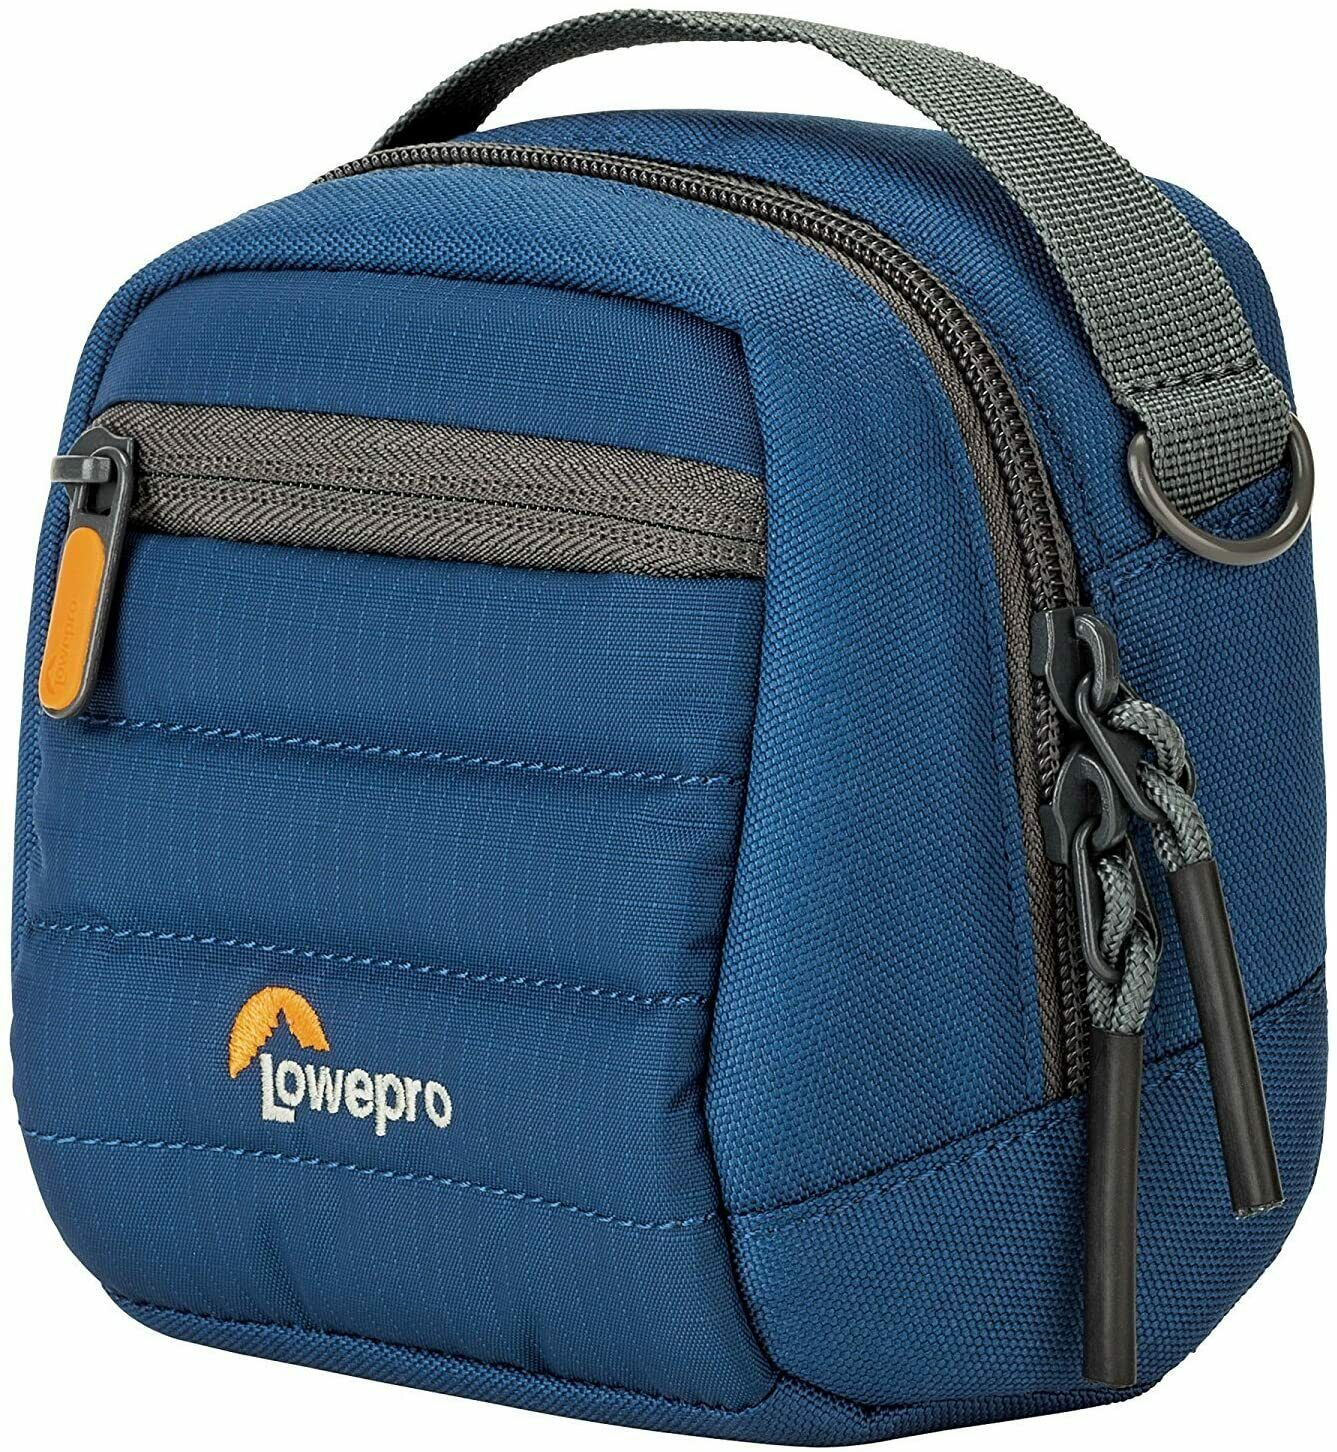 Lowepro Tahoe CS 80 for Compact System / Mirrorless Cameras (Galaxy Blue)